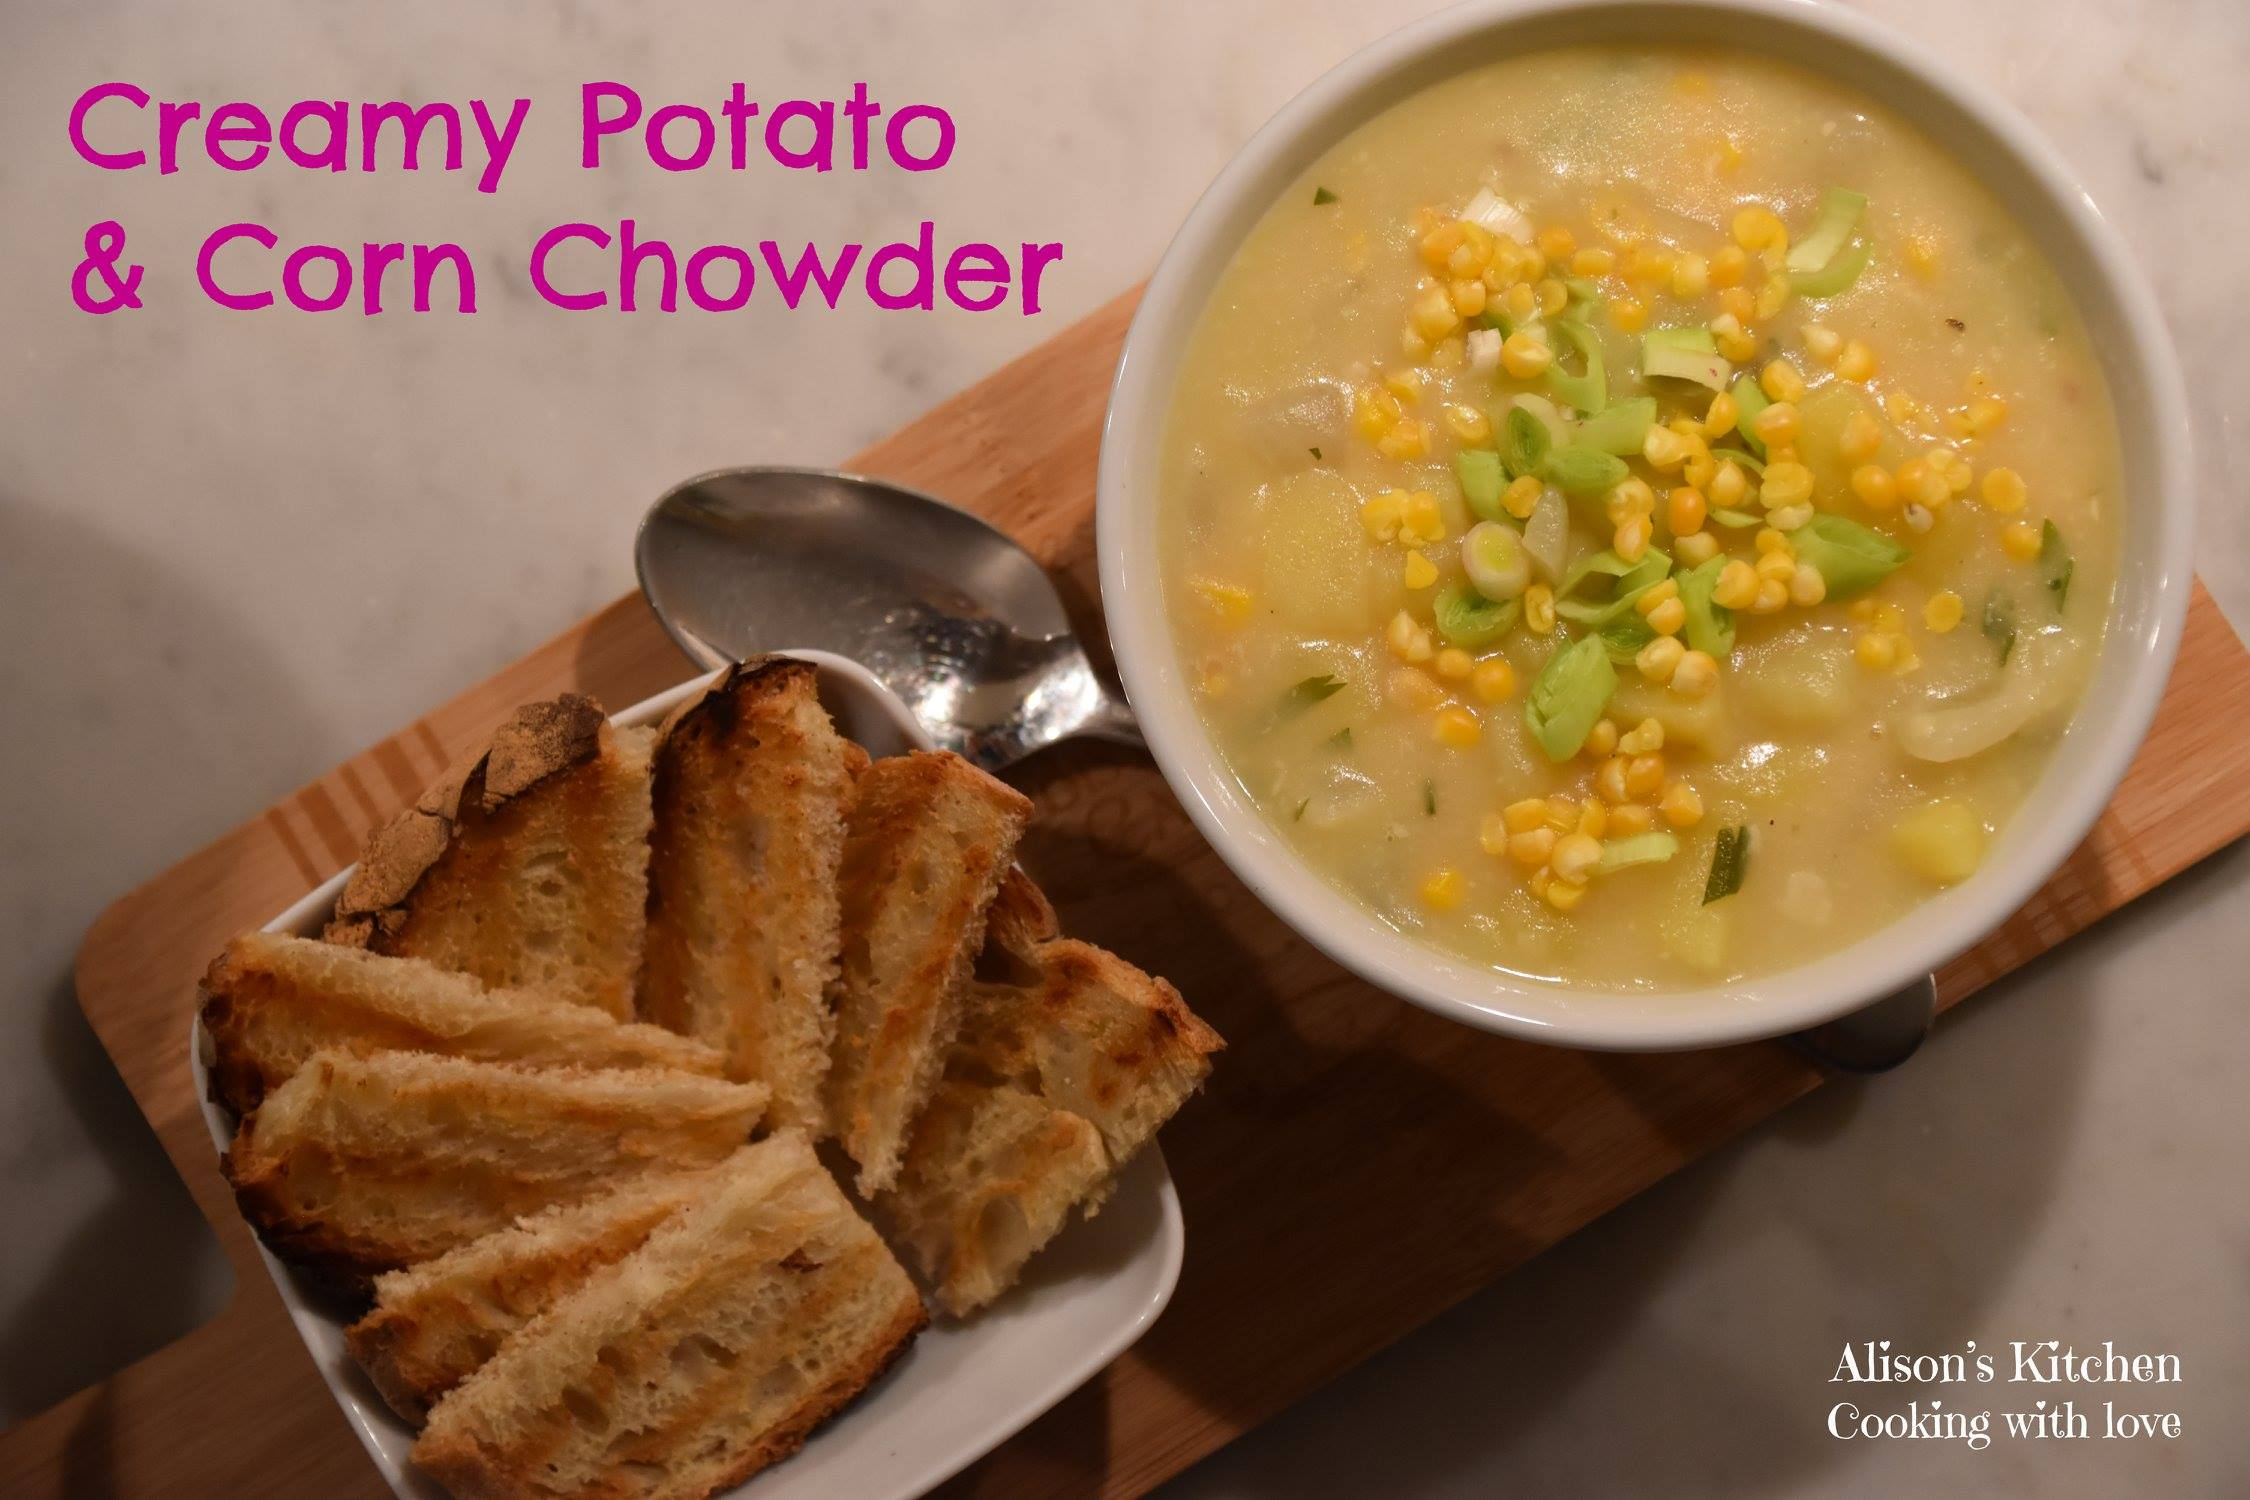 Creamy Potato & Corn Chowder main